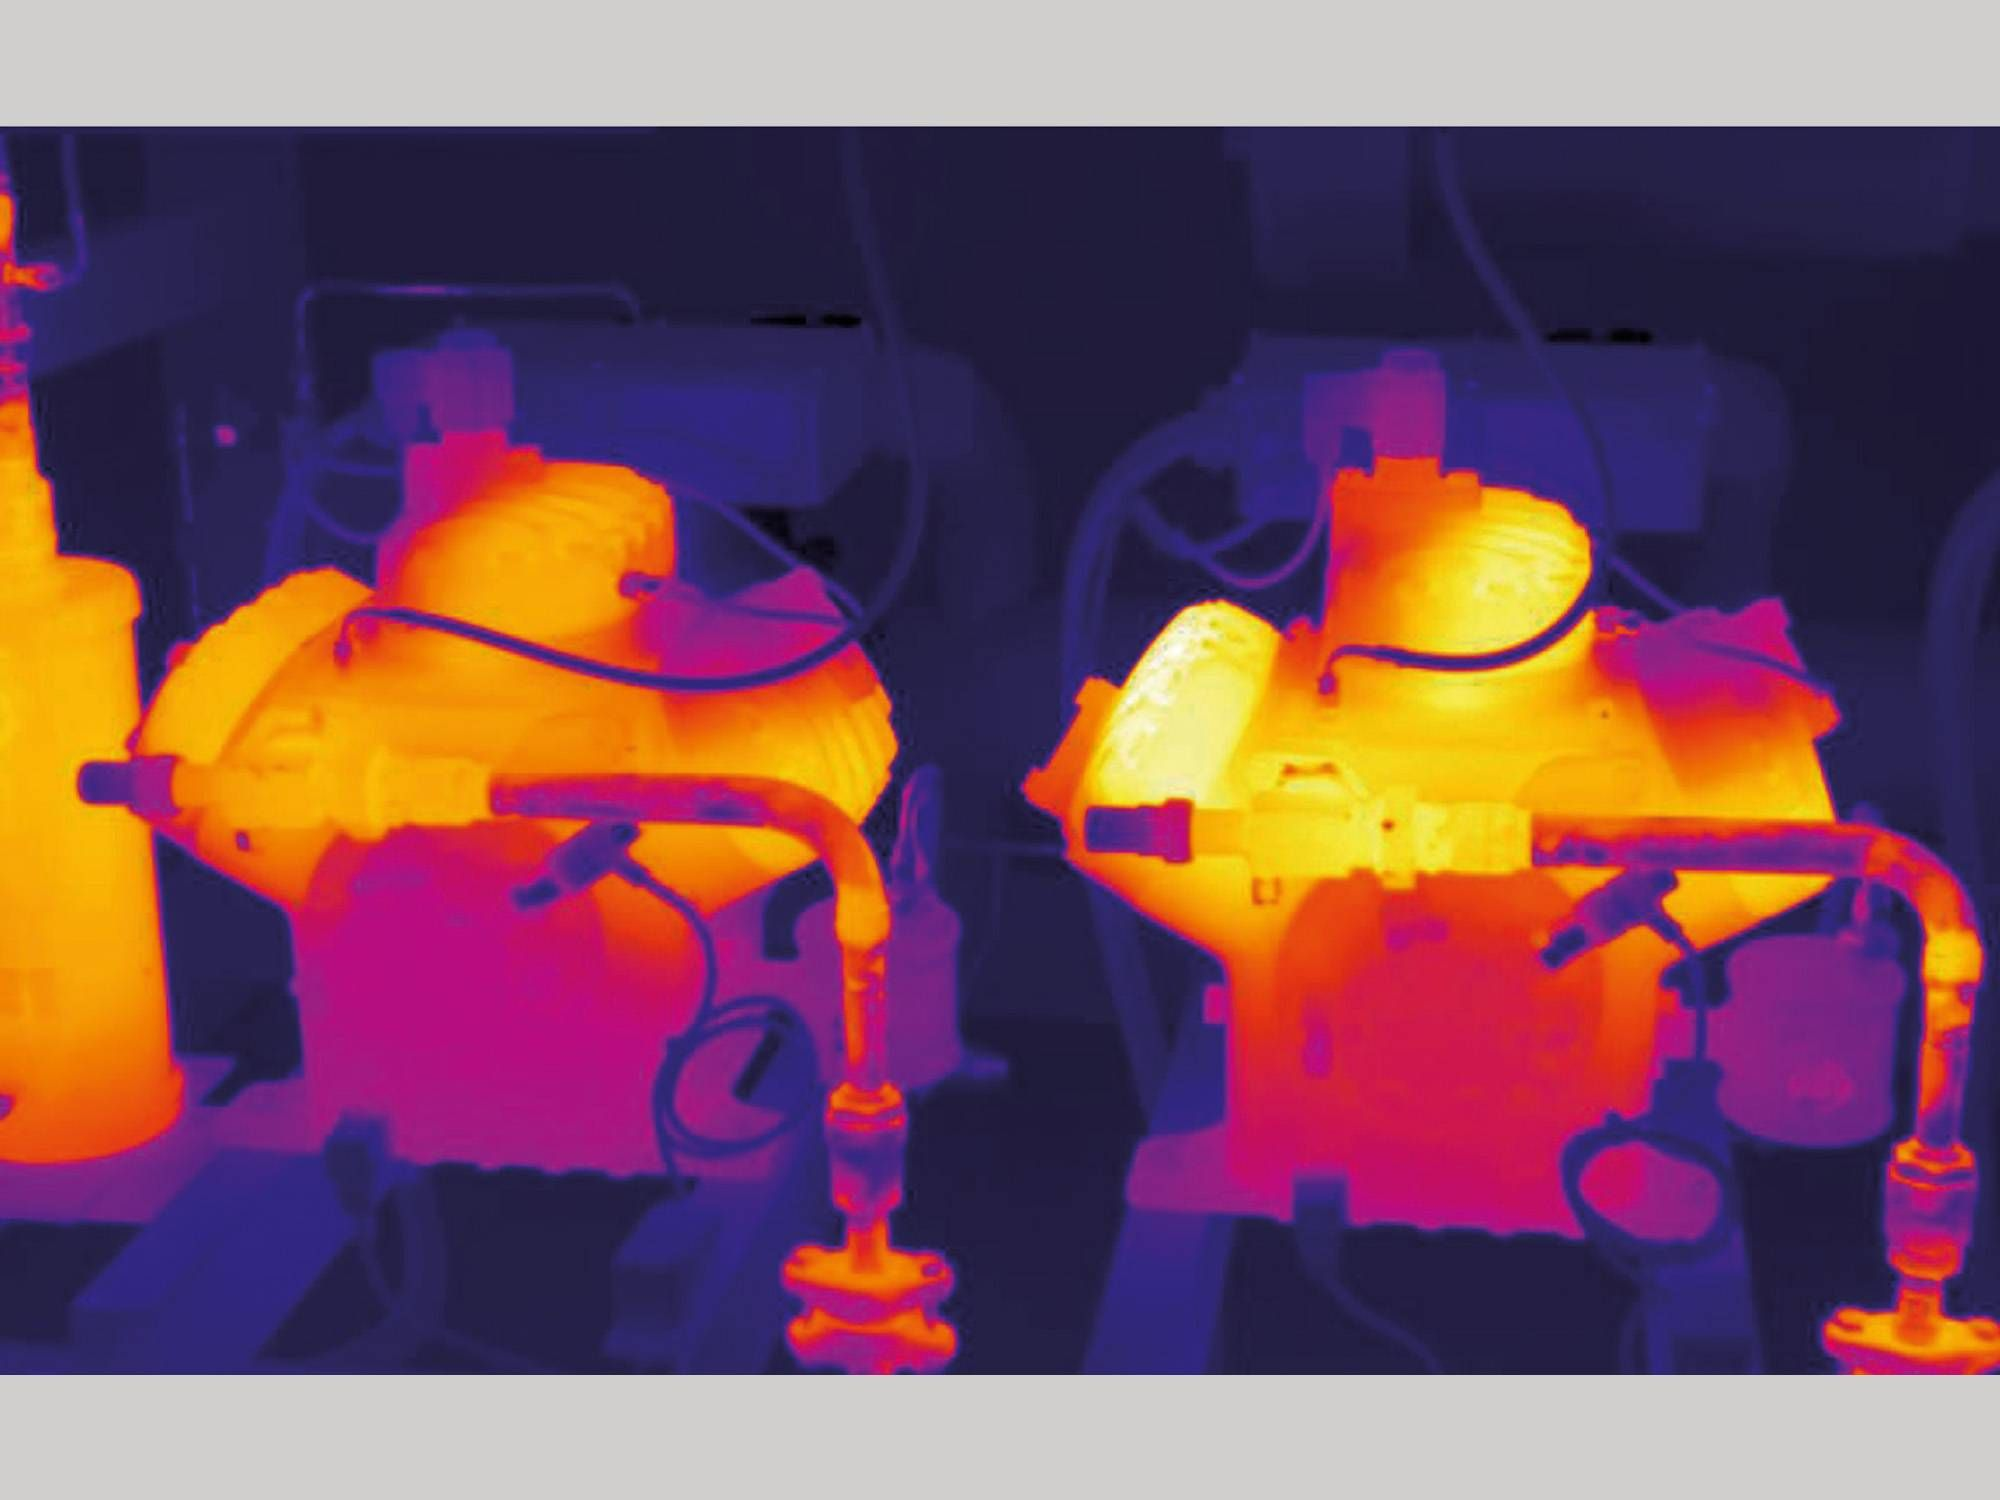 testo868: Smart and networked thermal imaging.